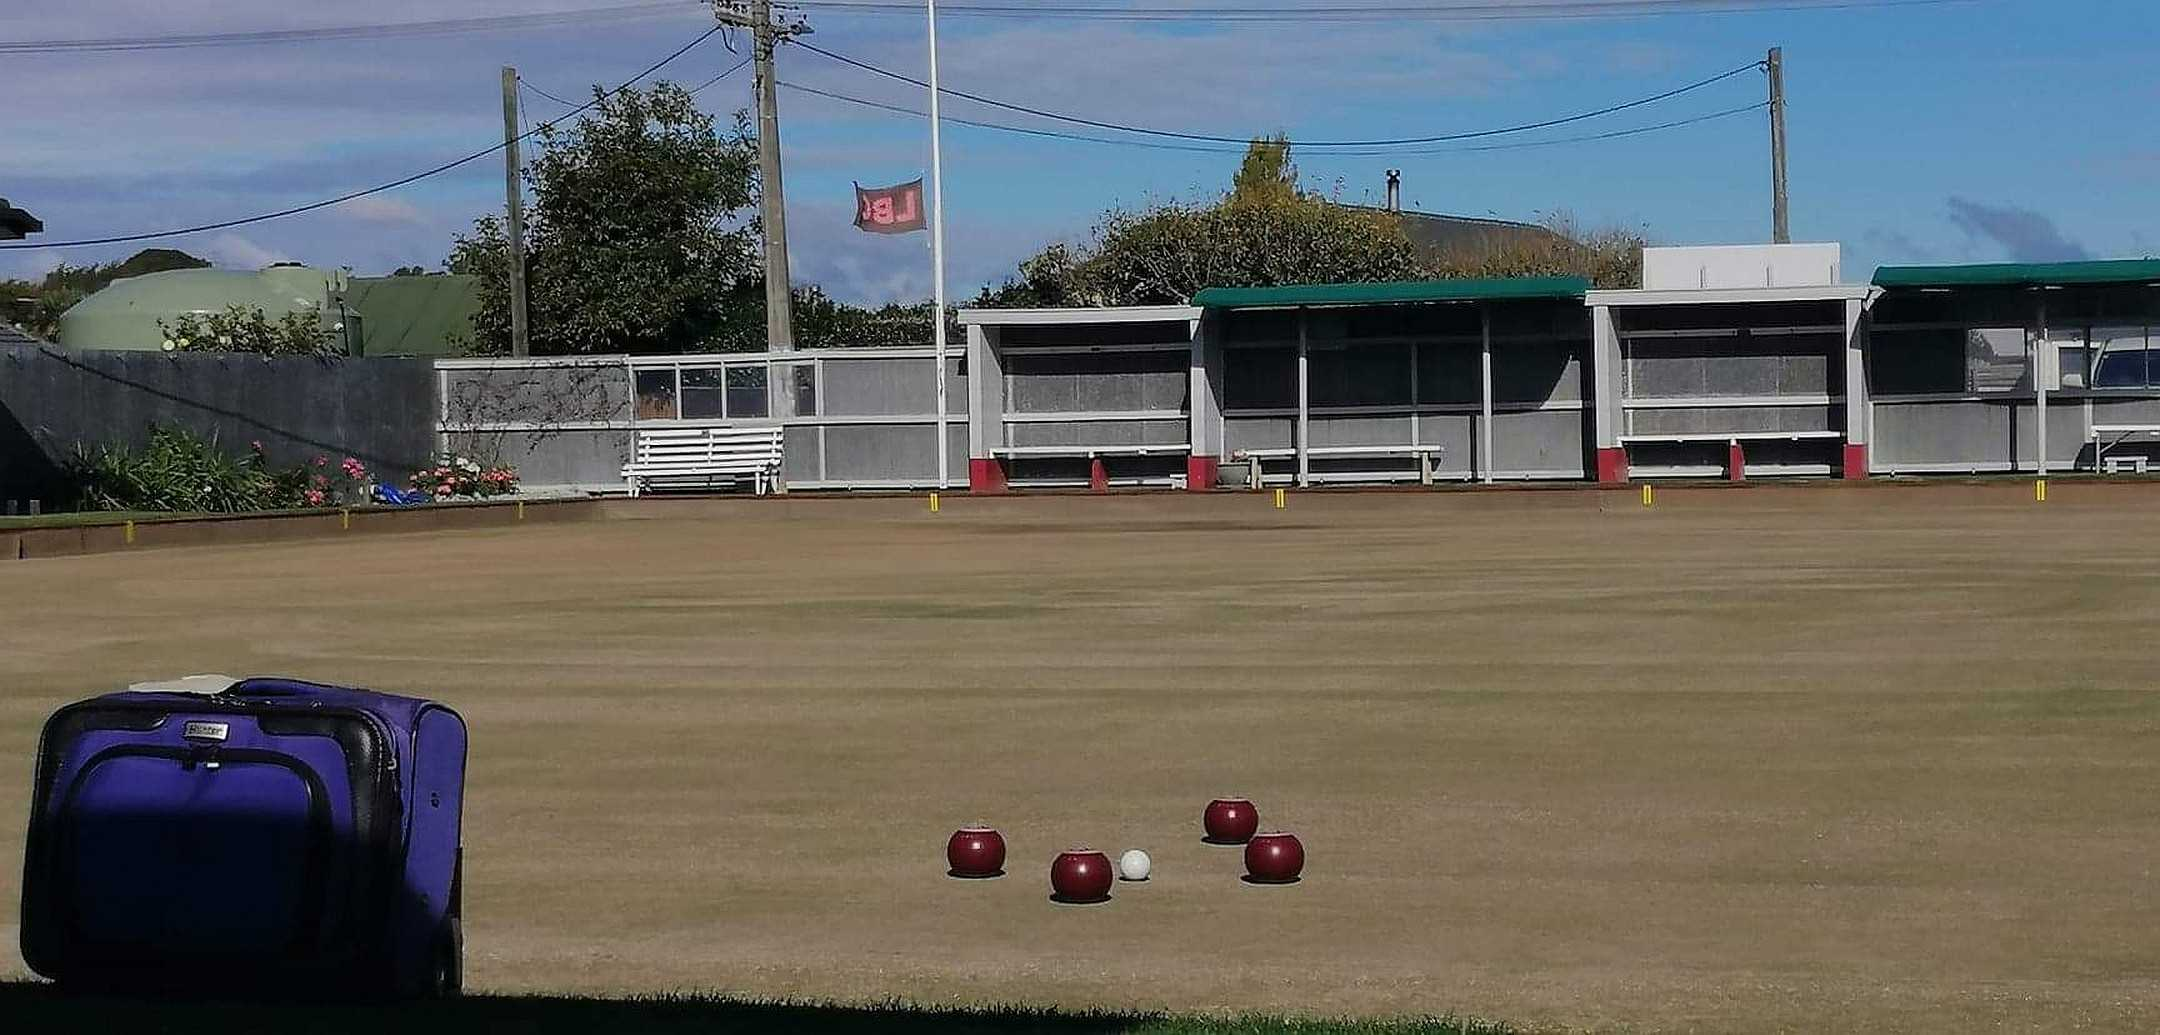 The Presidents Tournament - 17 April 2021 - Don Watson's bowls laid out in memory of his passing.